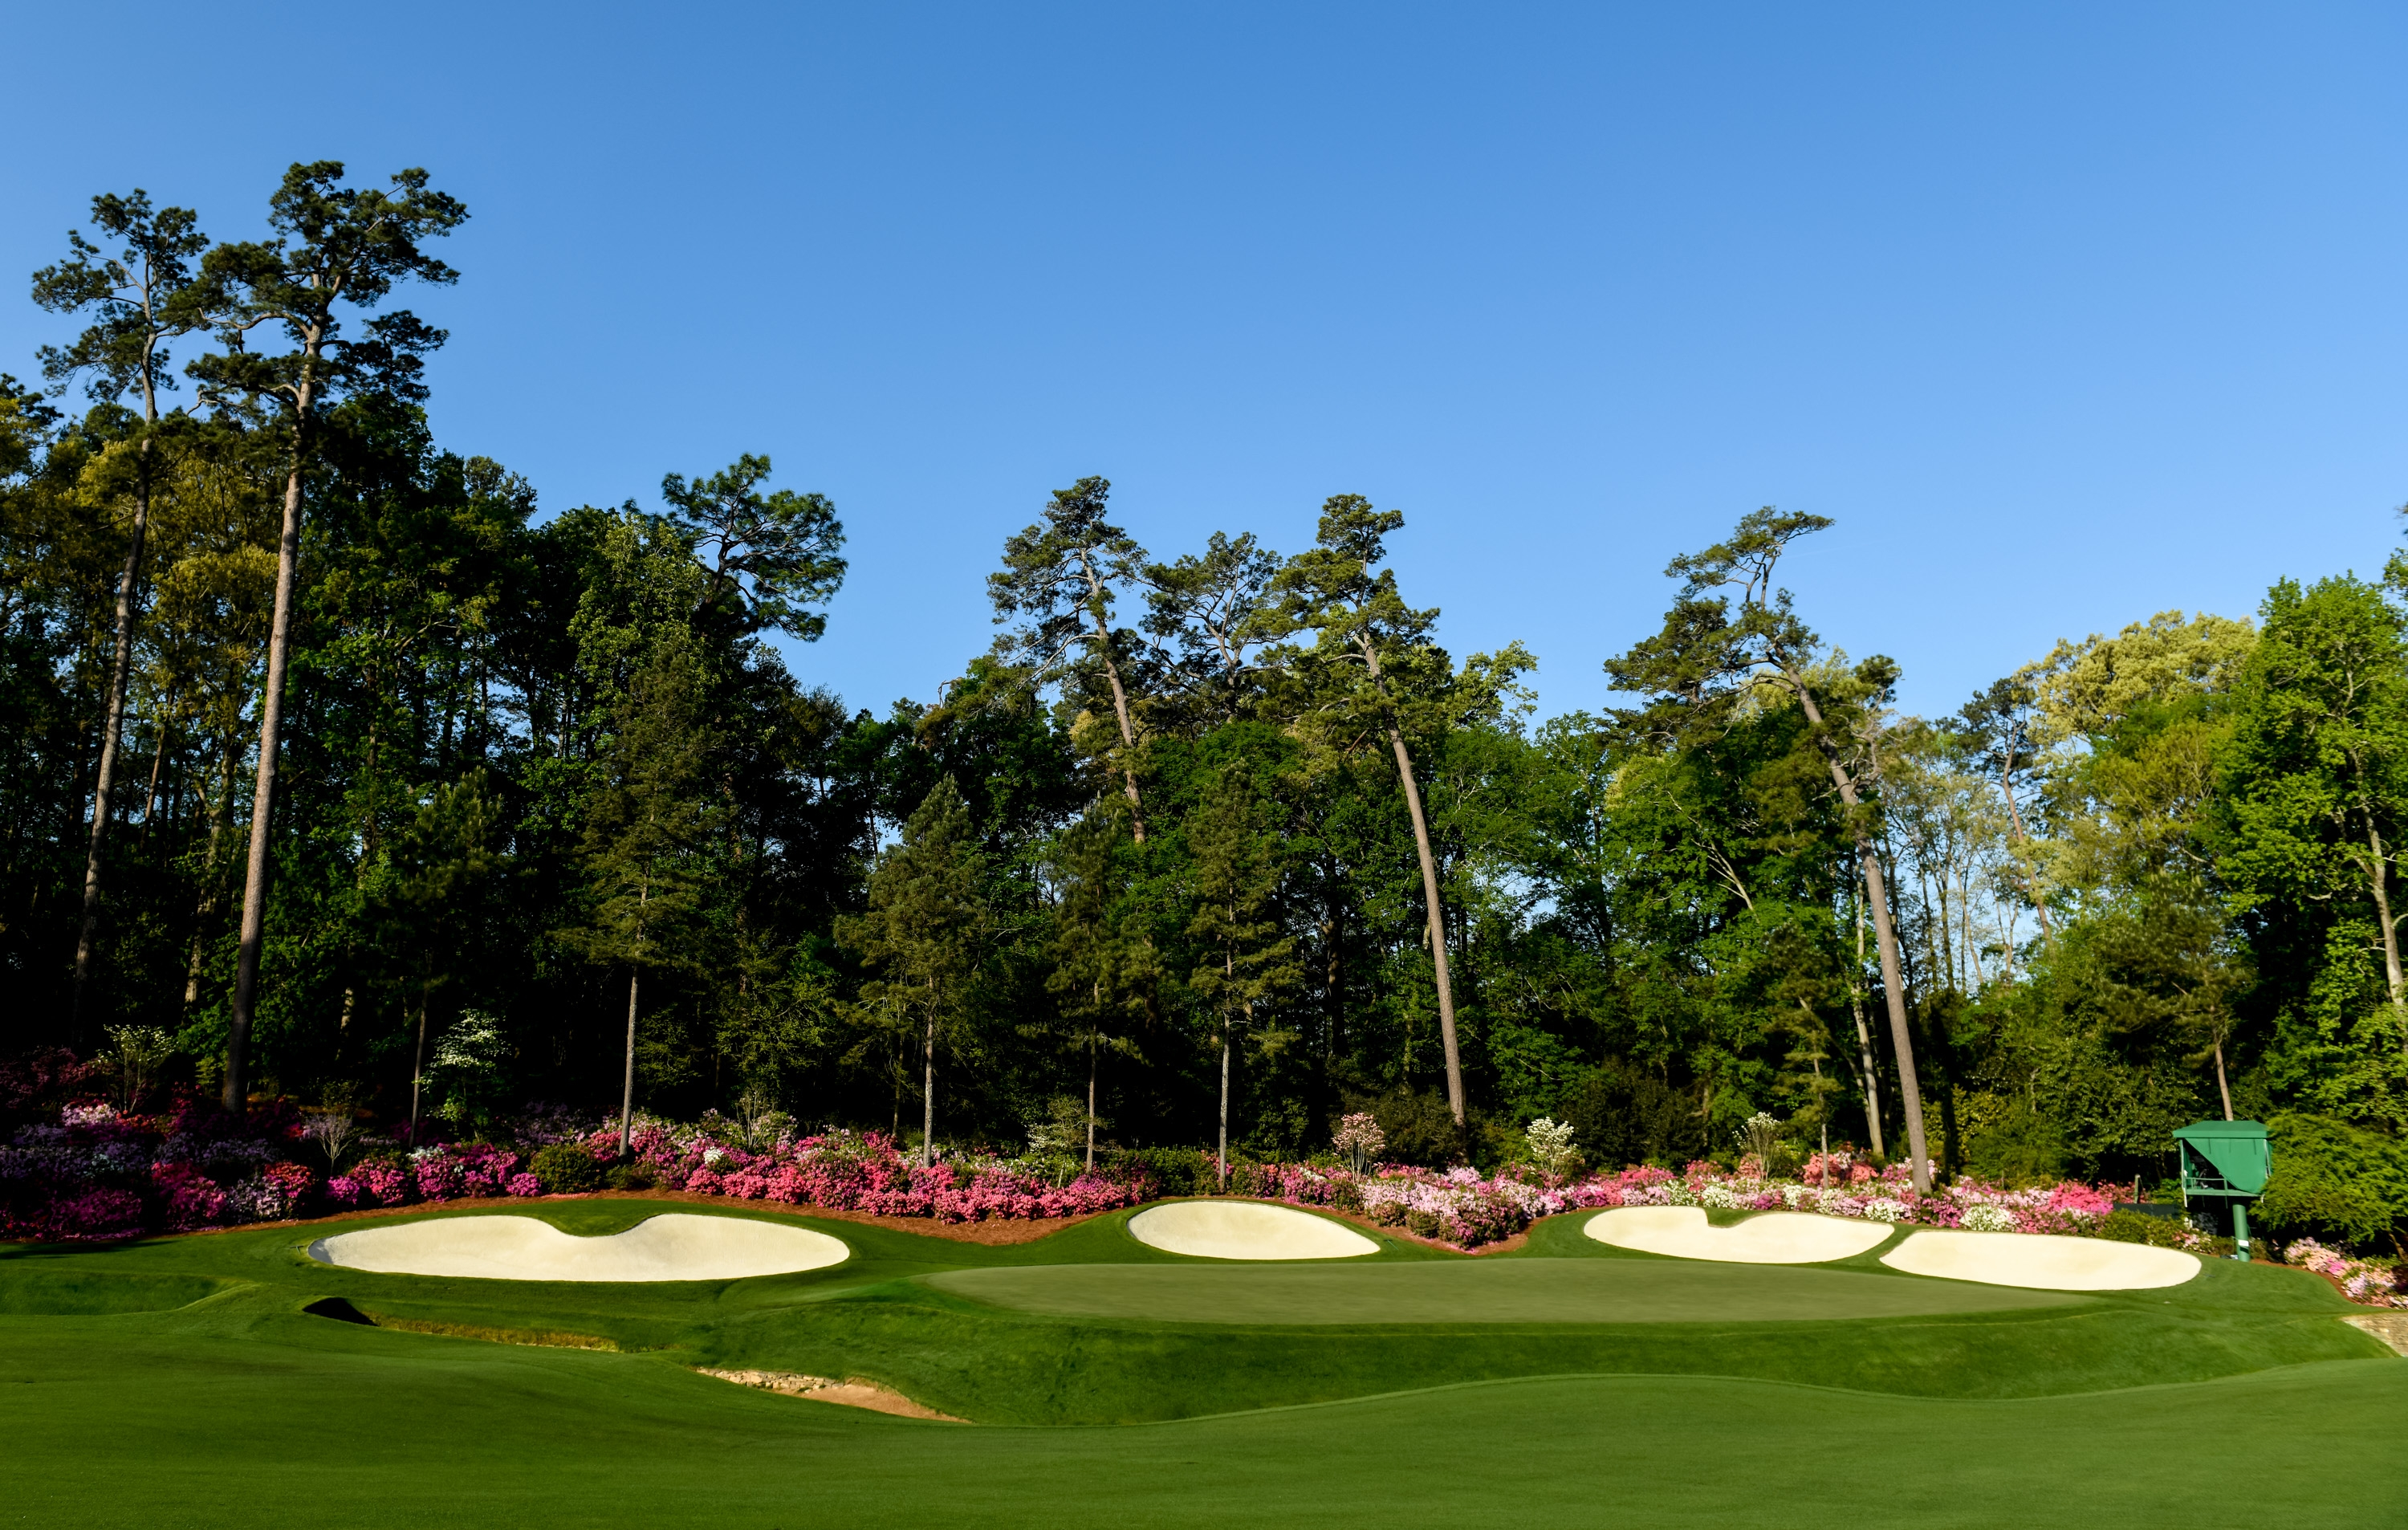 No. 13's challenge has faded in recent years at Augusta National